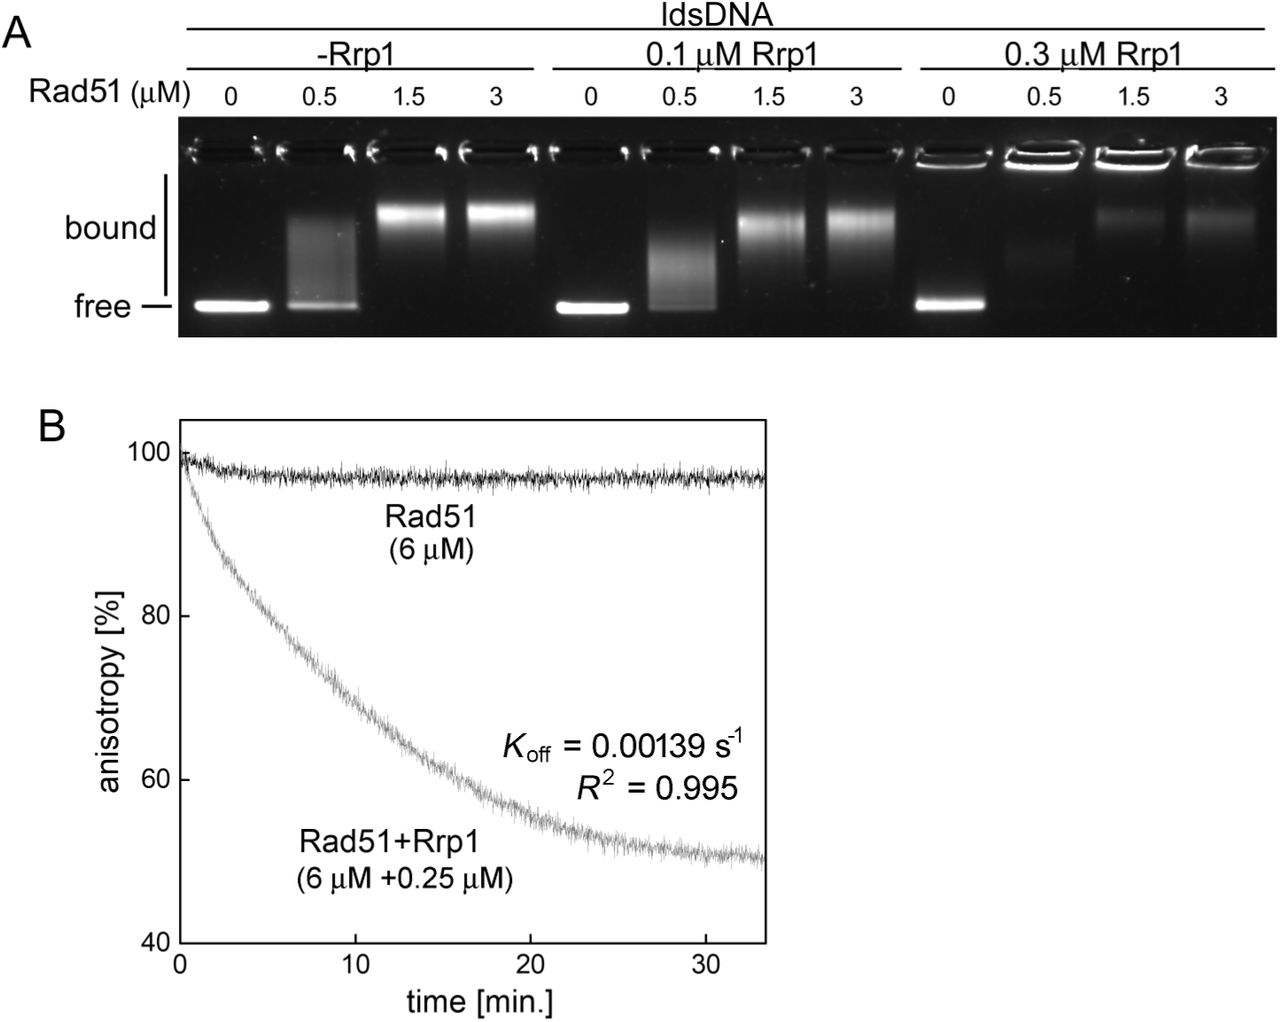 Rrp1 can disassemble Rad51-dsDNA complexes (A) Rrp1 outcompetes Rad51 for binding to dsDNA as demonstrated by electrophoretic mobility shift assay (EMSA). Increasing amounts of Rad51 were pre-incubated with linear double-stranded DNA (ldsDNA, PhiX 174 RF I linearized with ApaLI) before addition of the indicated concentration of Rrp1. Mixtures were resolved on an agarose gel and stained with SYBR-gold. (B) Rad51-dsDNA filaments disassemble following addition of Rrp1, as demonstrated by the reduction in anisotropy of fluorescently-labelled dsDNA. Rad51 (6 µM) was incubated with a dsDNA oligonucleotide (3 µM nucleotide concentration) labelled with the TAMRA fluorophore; the resultant high anisotropy value confirms filament formation. Unlabelled heterologous scavenger DNA was then added, followed by a sub stoichiometric amount of Rrp1 (0.25 µM) or the equivalent volume of protein storage buffer, and fluorescence anisotropy was monitored for the indicated time. The decline in anisotropy observed in the reaction containing Rrp1 indicates that Rad51-dsDNA complexes are disassembled.